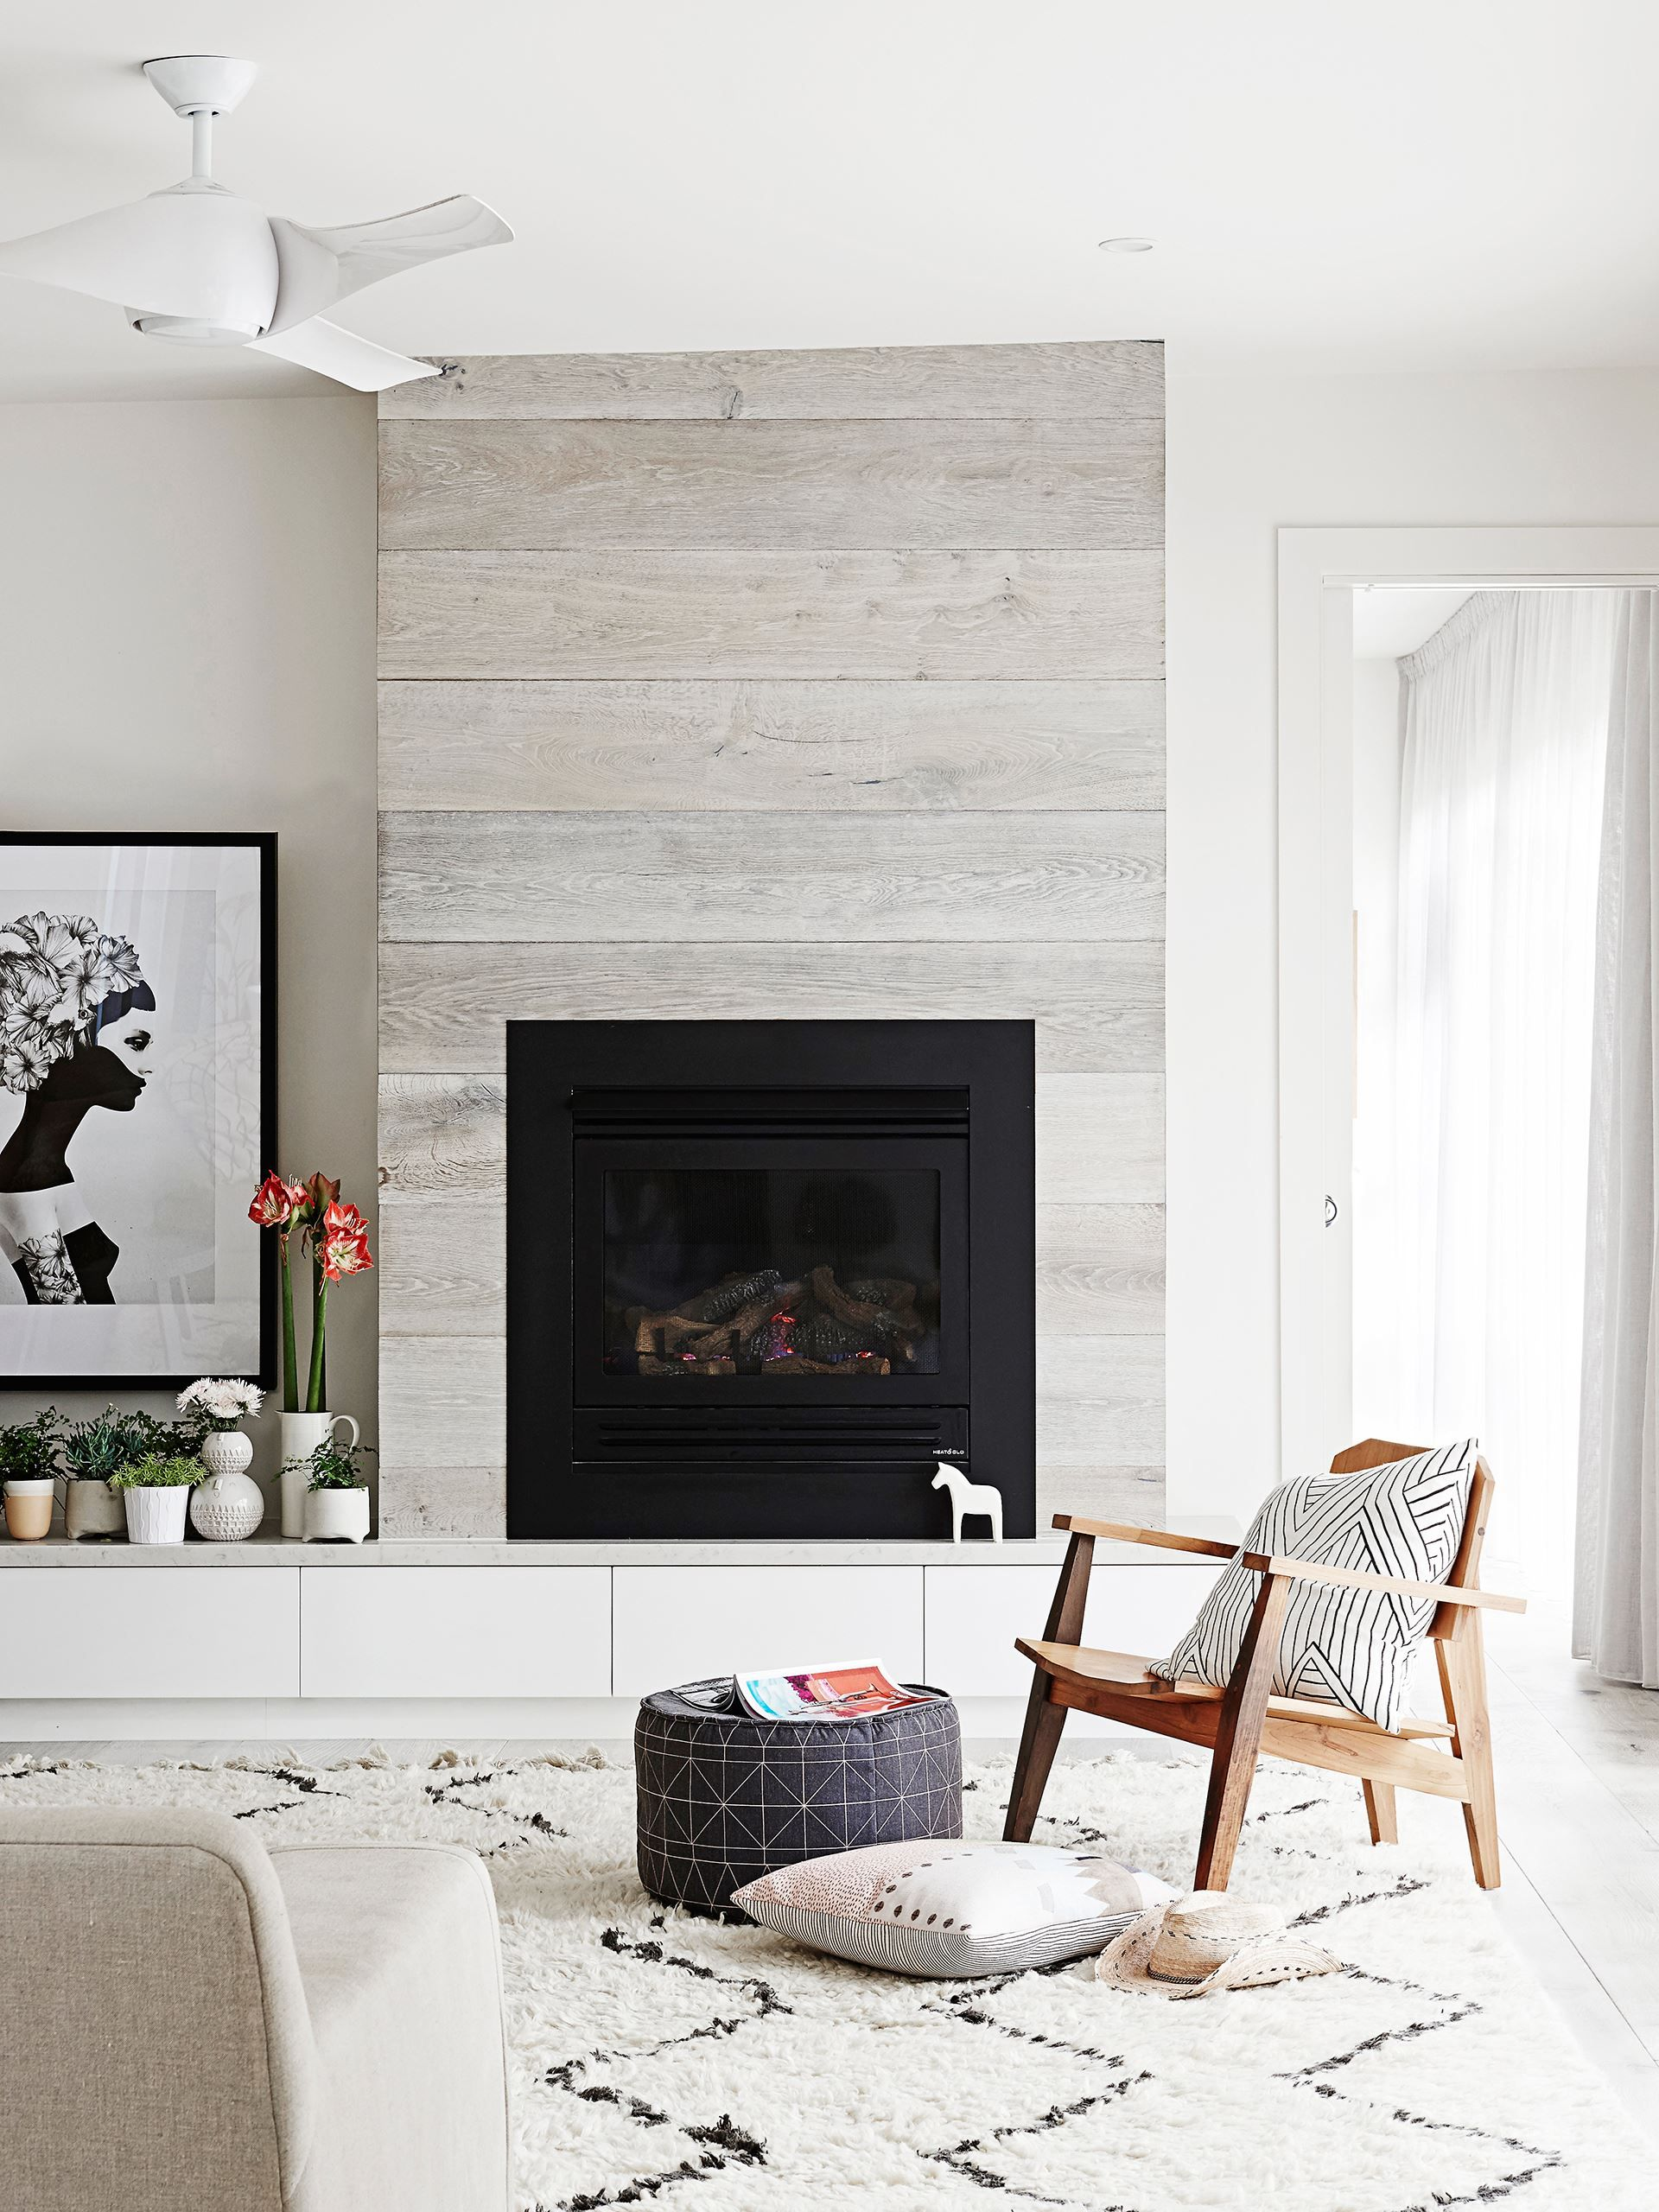 Wohnzimmer Holzoptik Tapete Our Favorite Fireplace Trends Projects Willow Valley Spring Run